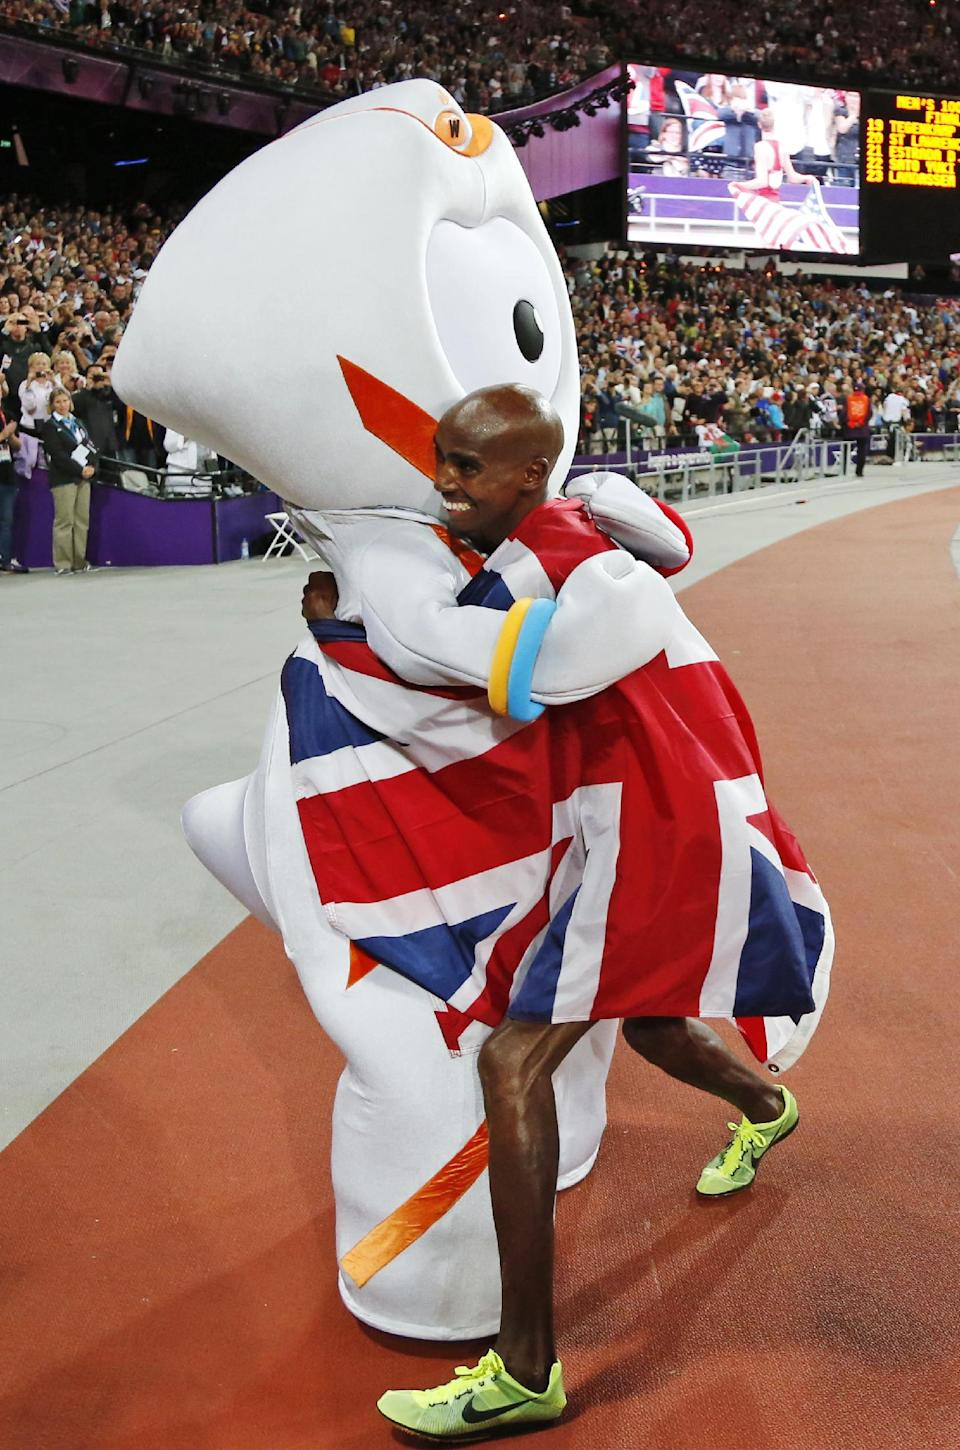 Britain's Mo Farah, right, embraces Wenlock, the games mascot, after winning gold in the men's 10,000-meter during the athletics in the Olympic Stadium at the 2012 Summer Olympics, London, Saturday, Aug. 4, 2012. (AP Photo/Matt Dunham)